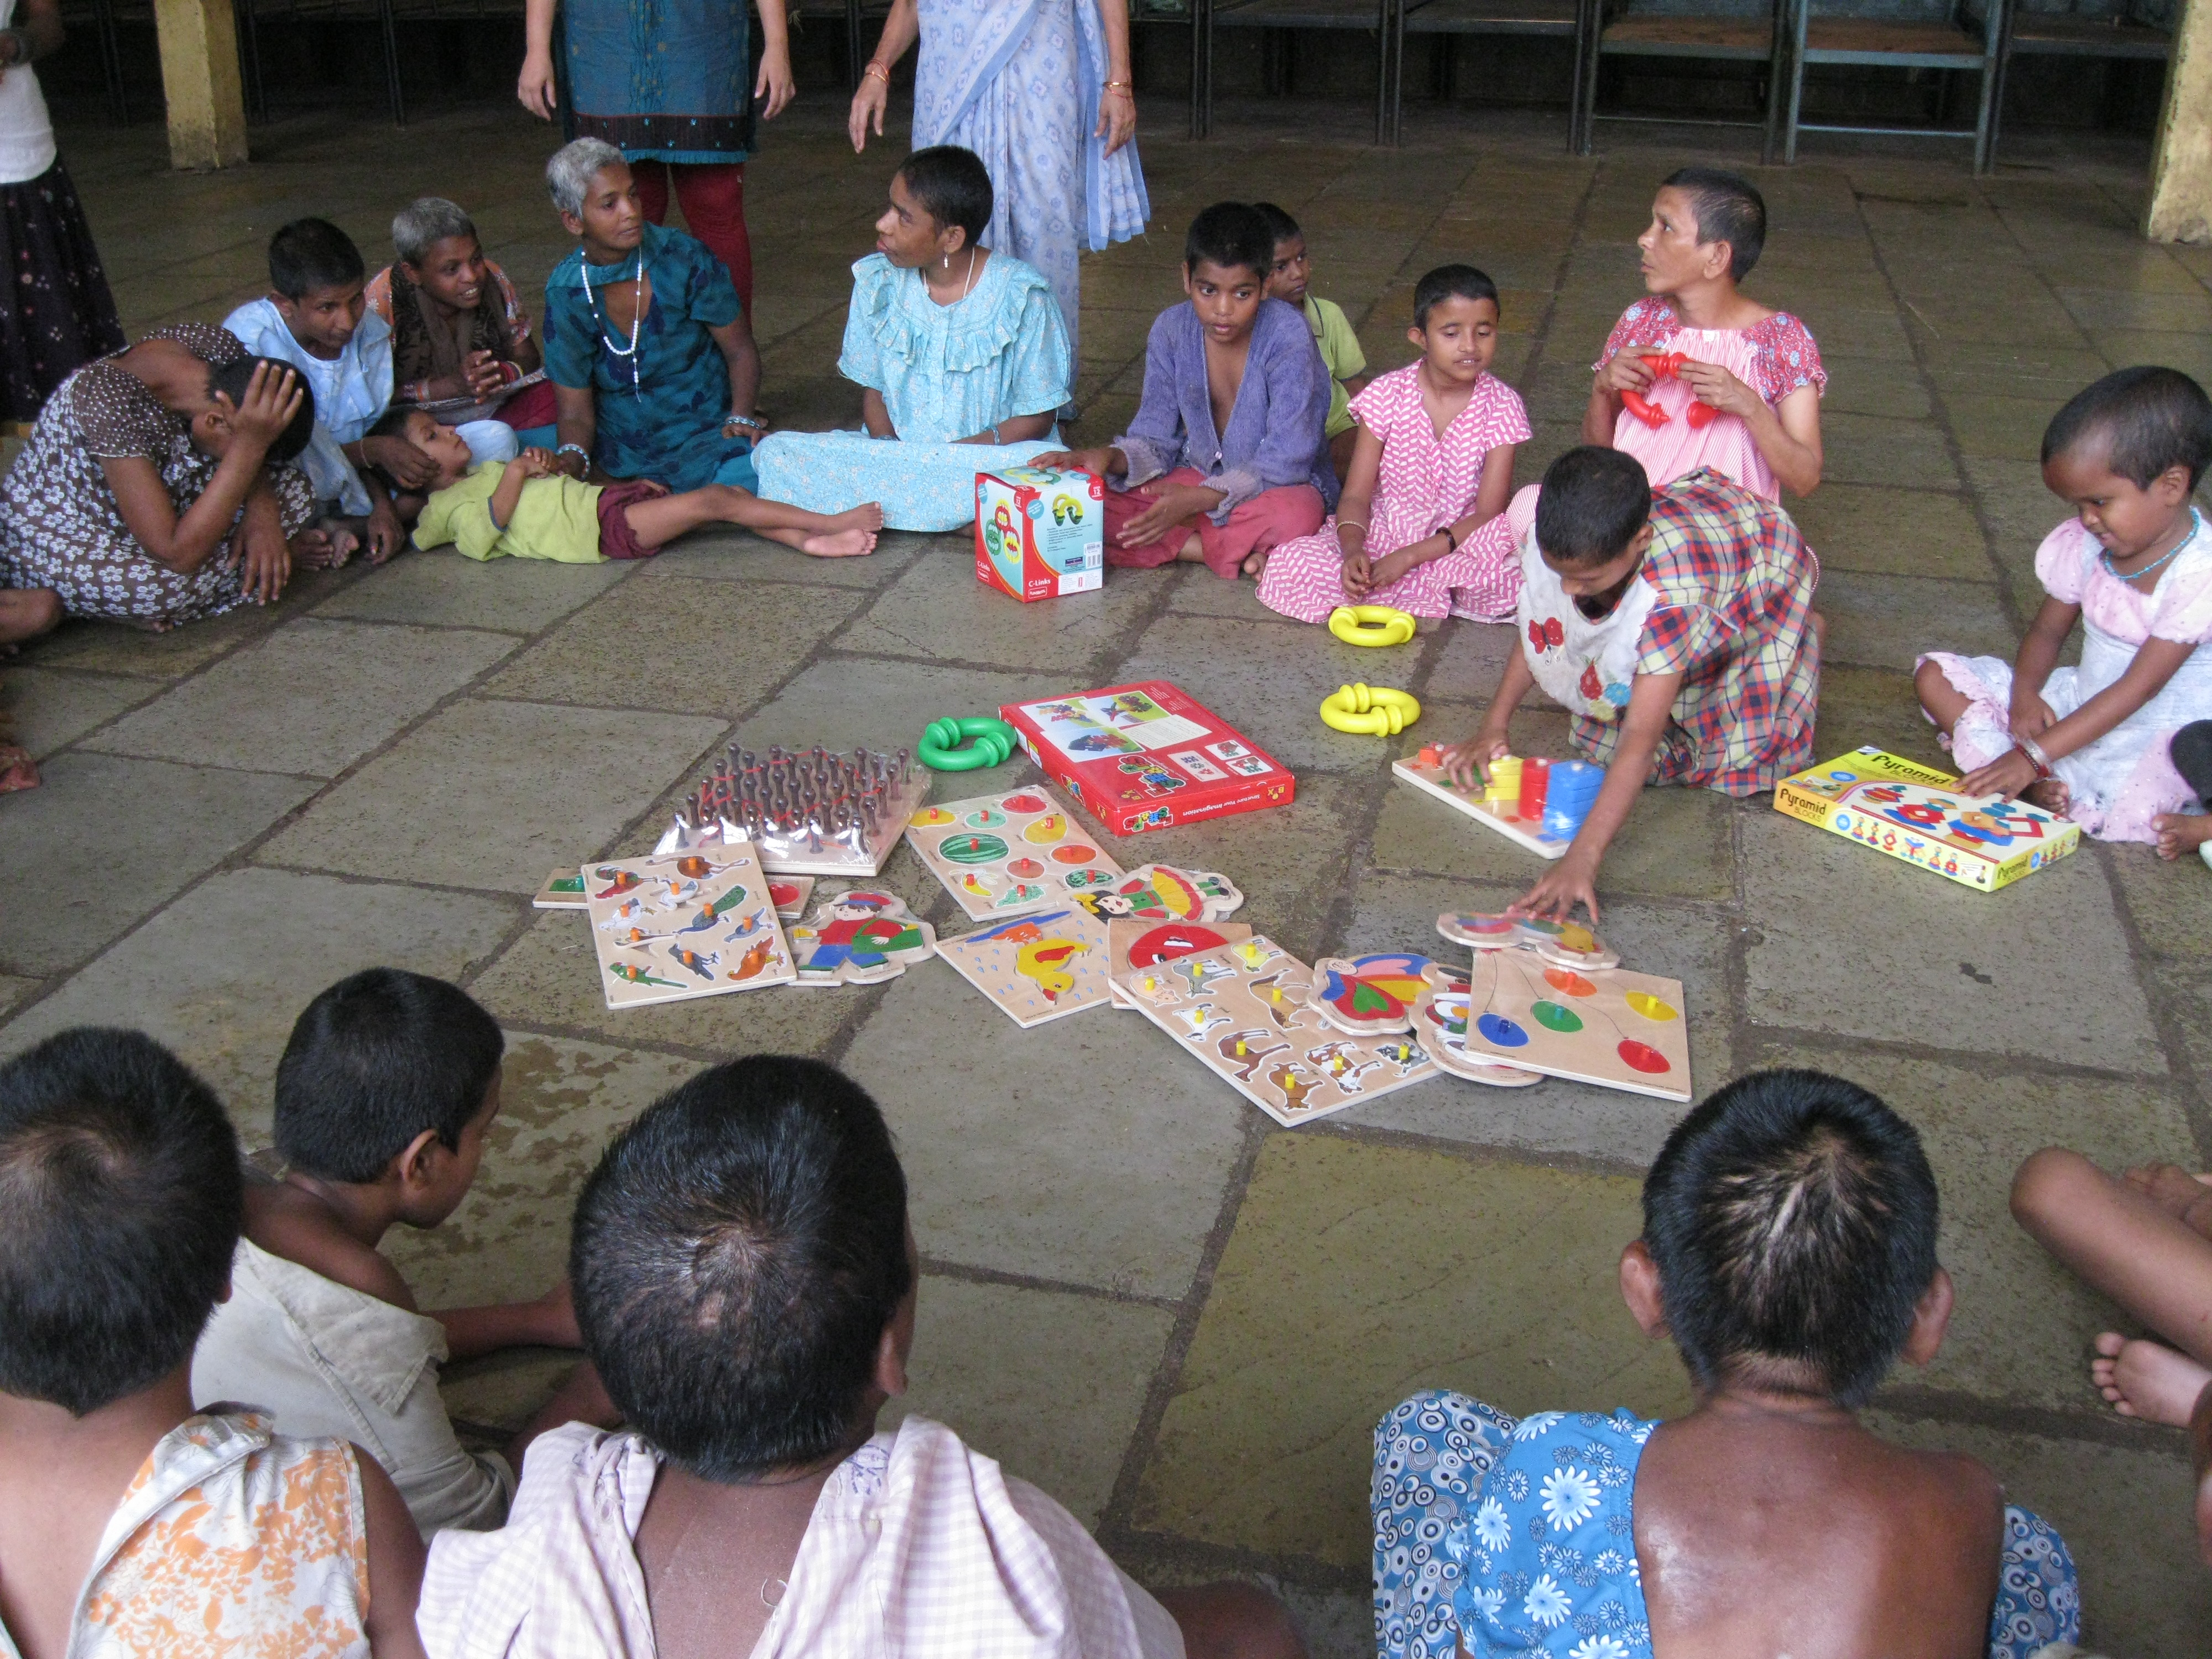 CSA supports the children in special need. the newly started home for sp. nd. kids in Pune, didn